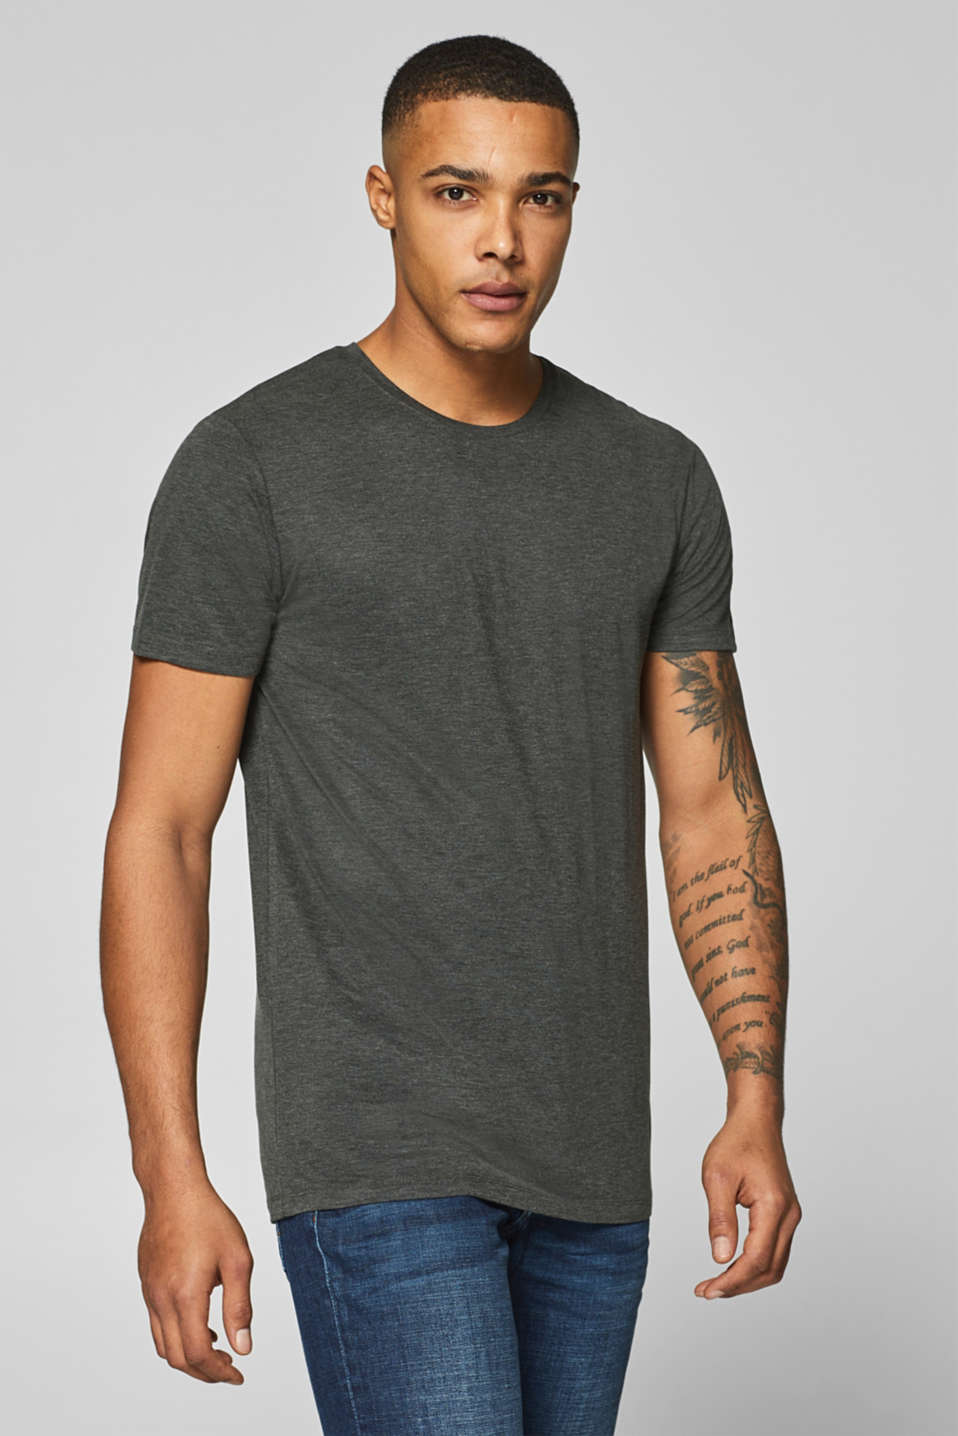 Esprit - KEEP COOL, STAY WARM: Jersey T-shirt